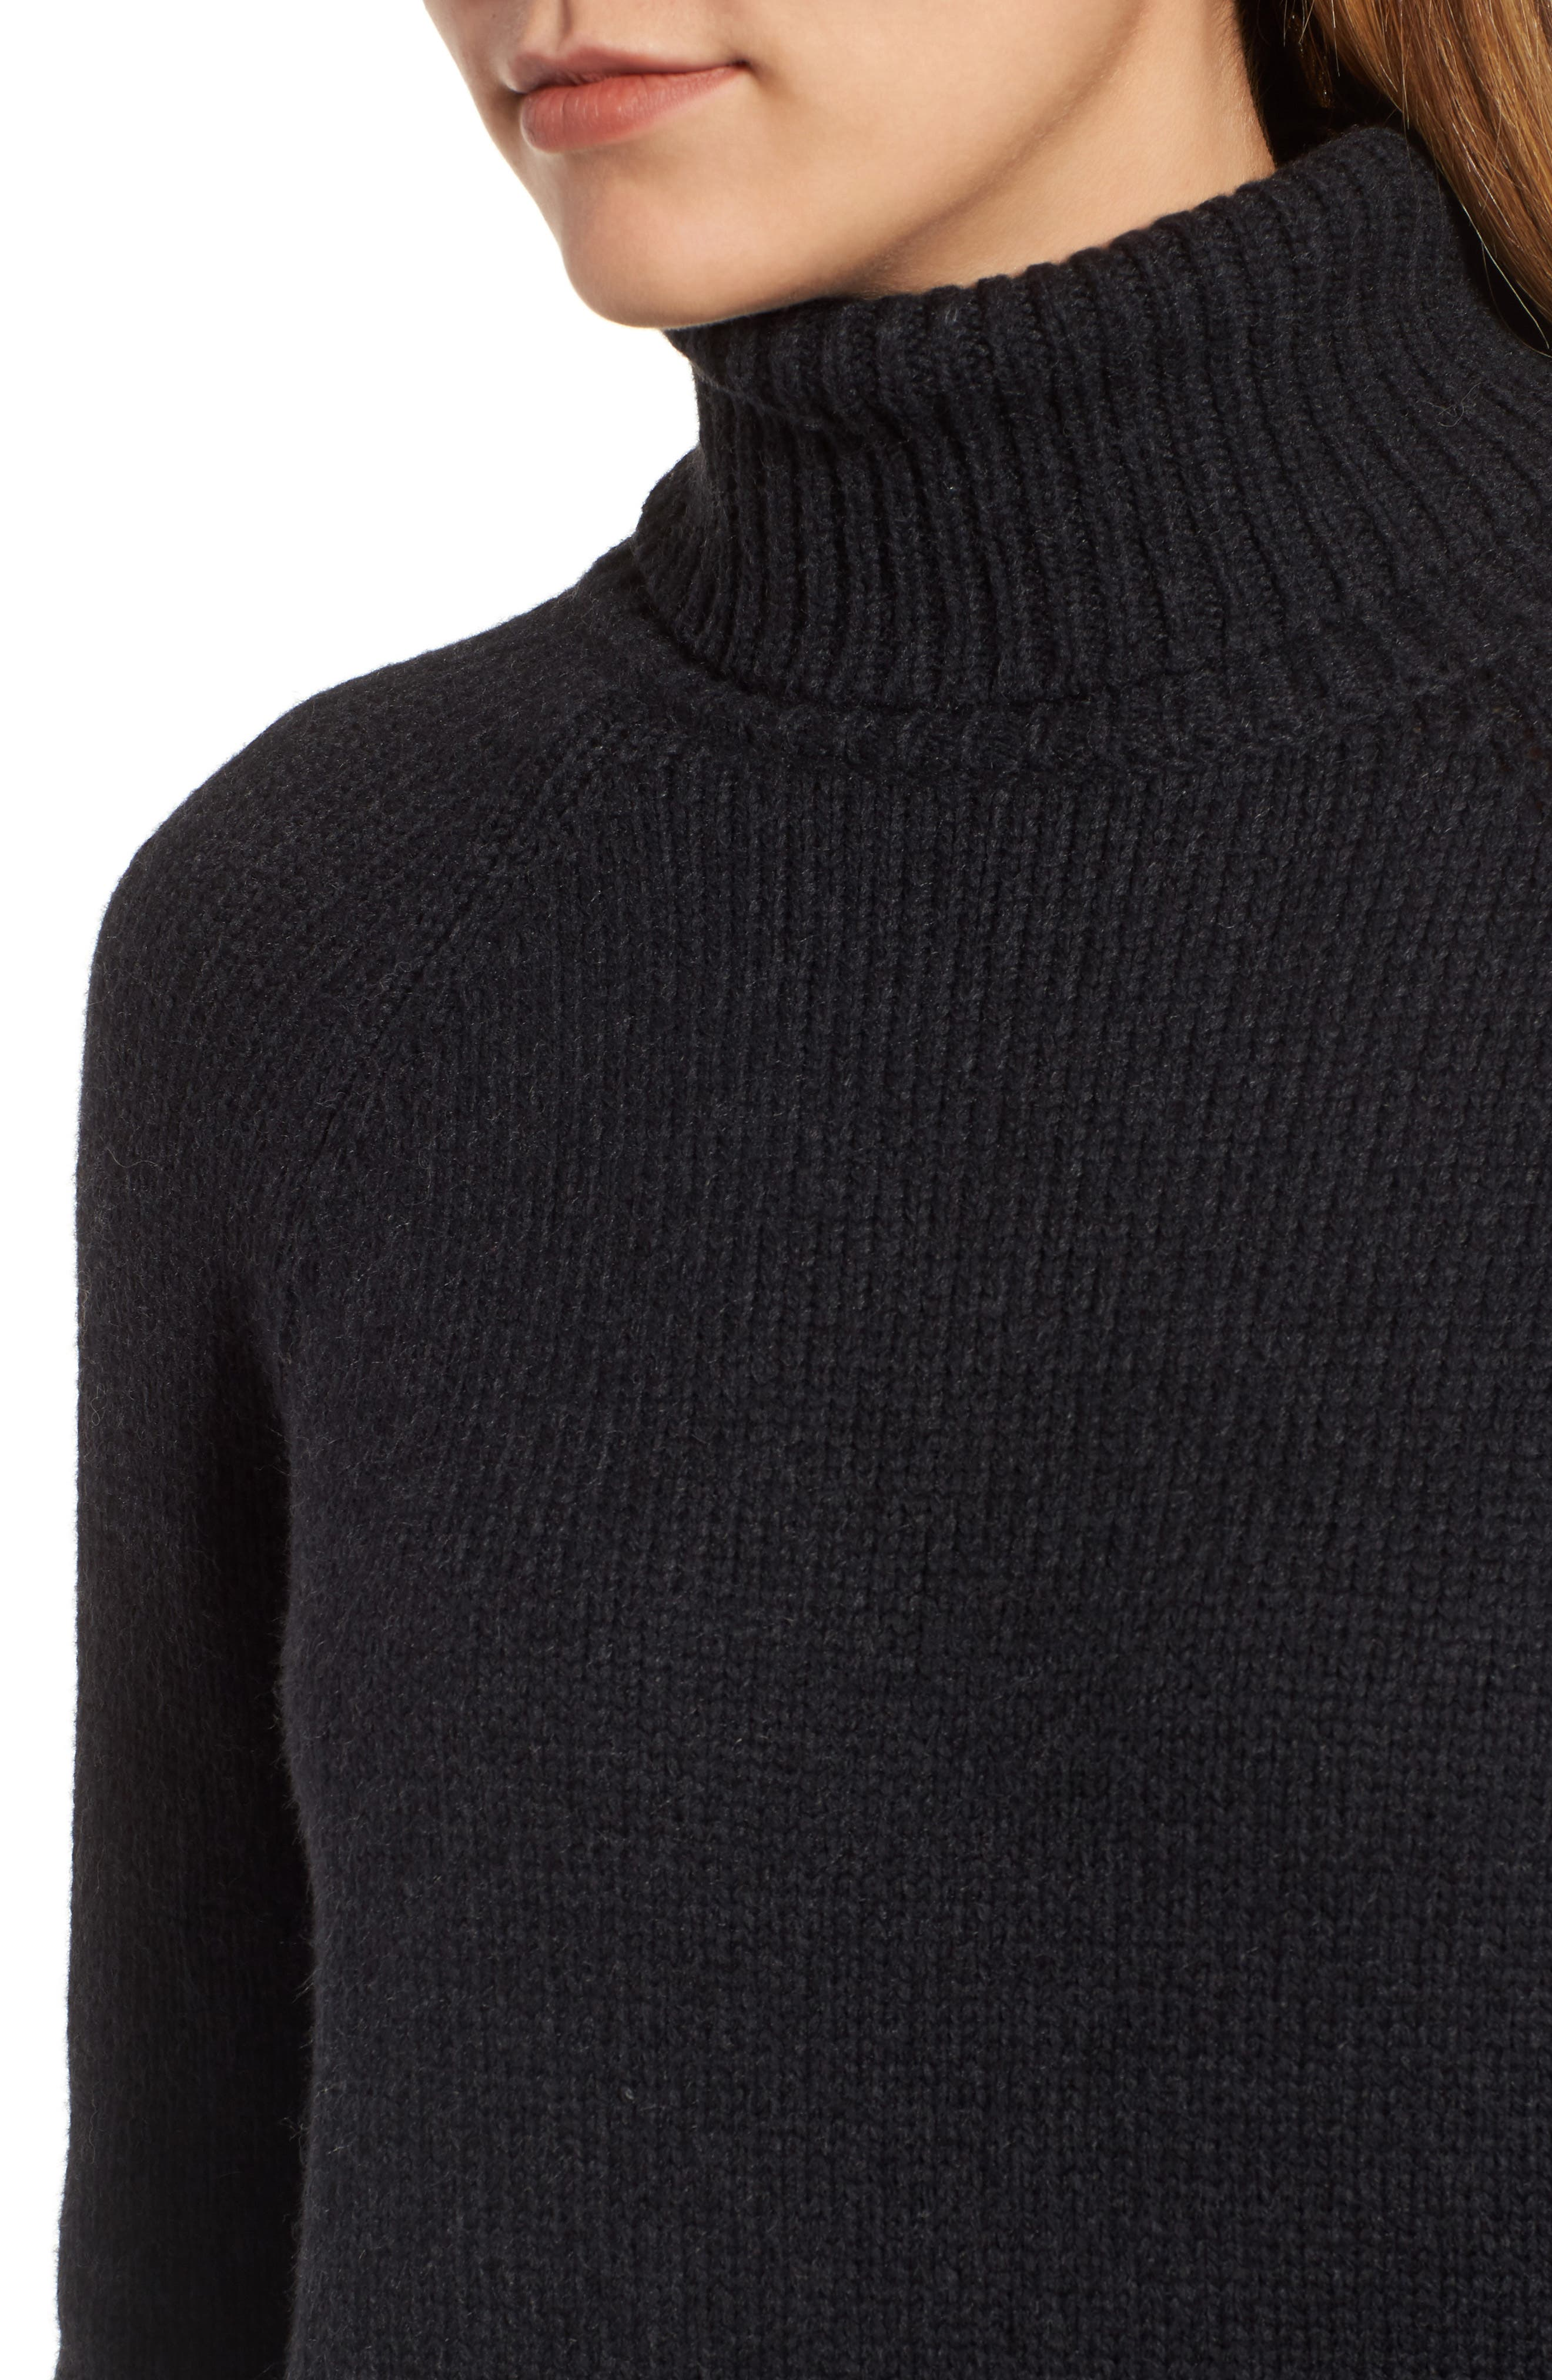 Textured Turtleneck Sweater,                             Alternate thumbnail 4, color,                             025